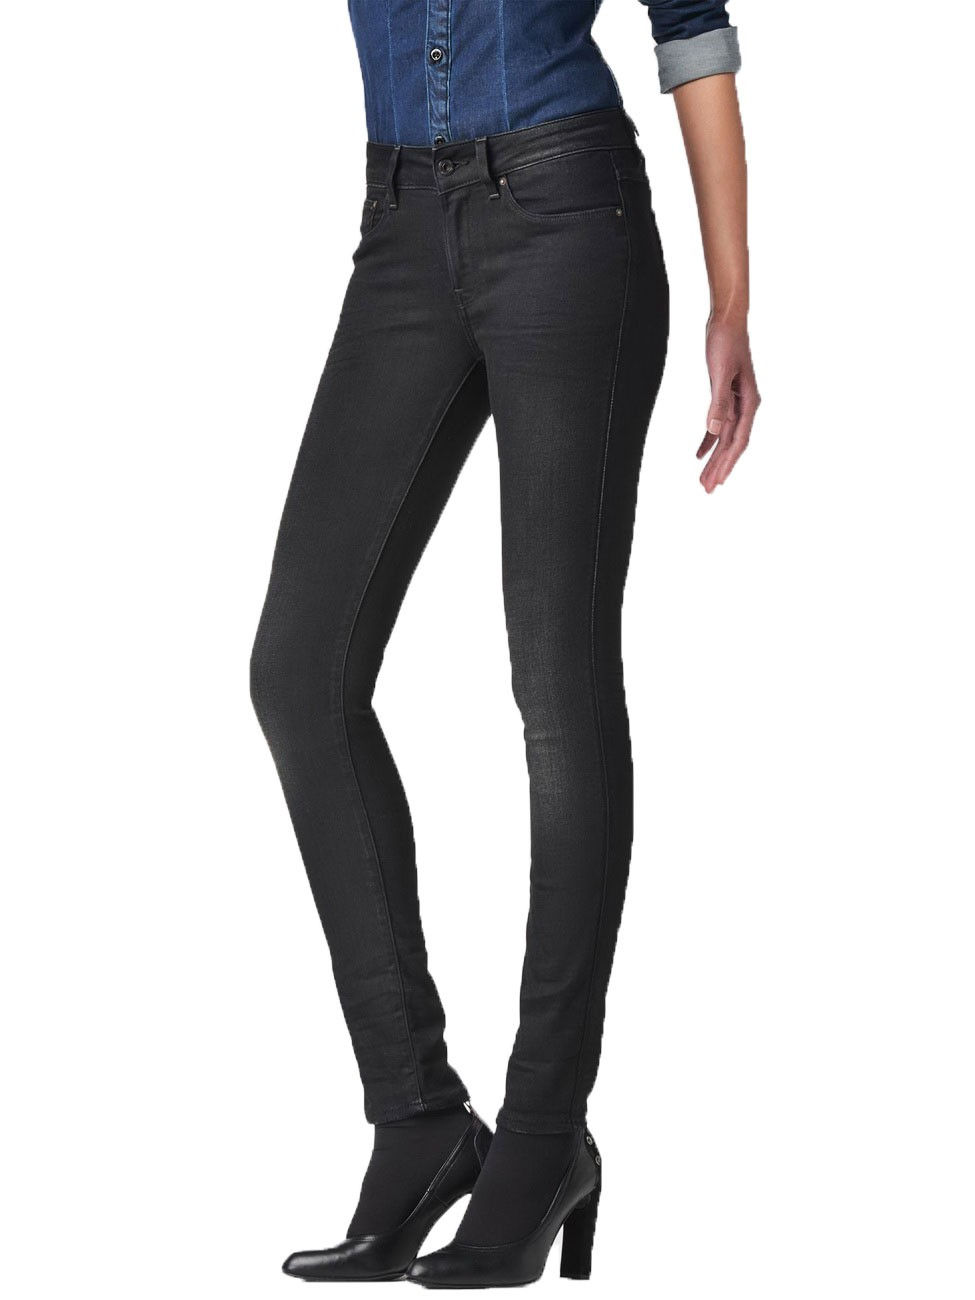 star jeans 3301 contour damen high waist skinny jeans blau dark. Black Bedroom Furniture Sets. Home Design Ideas